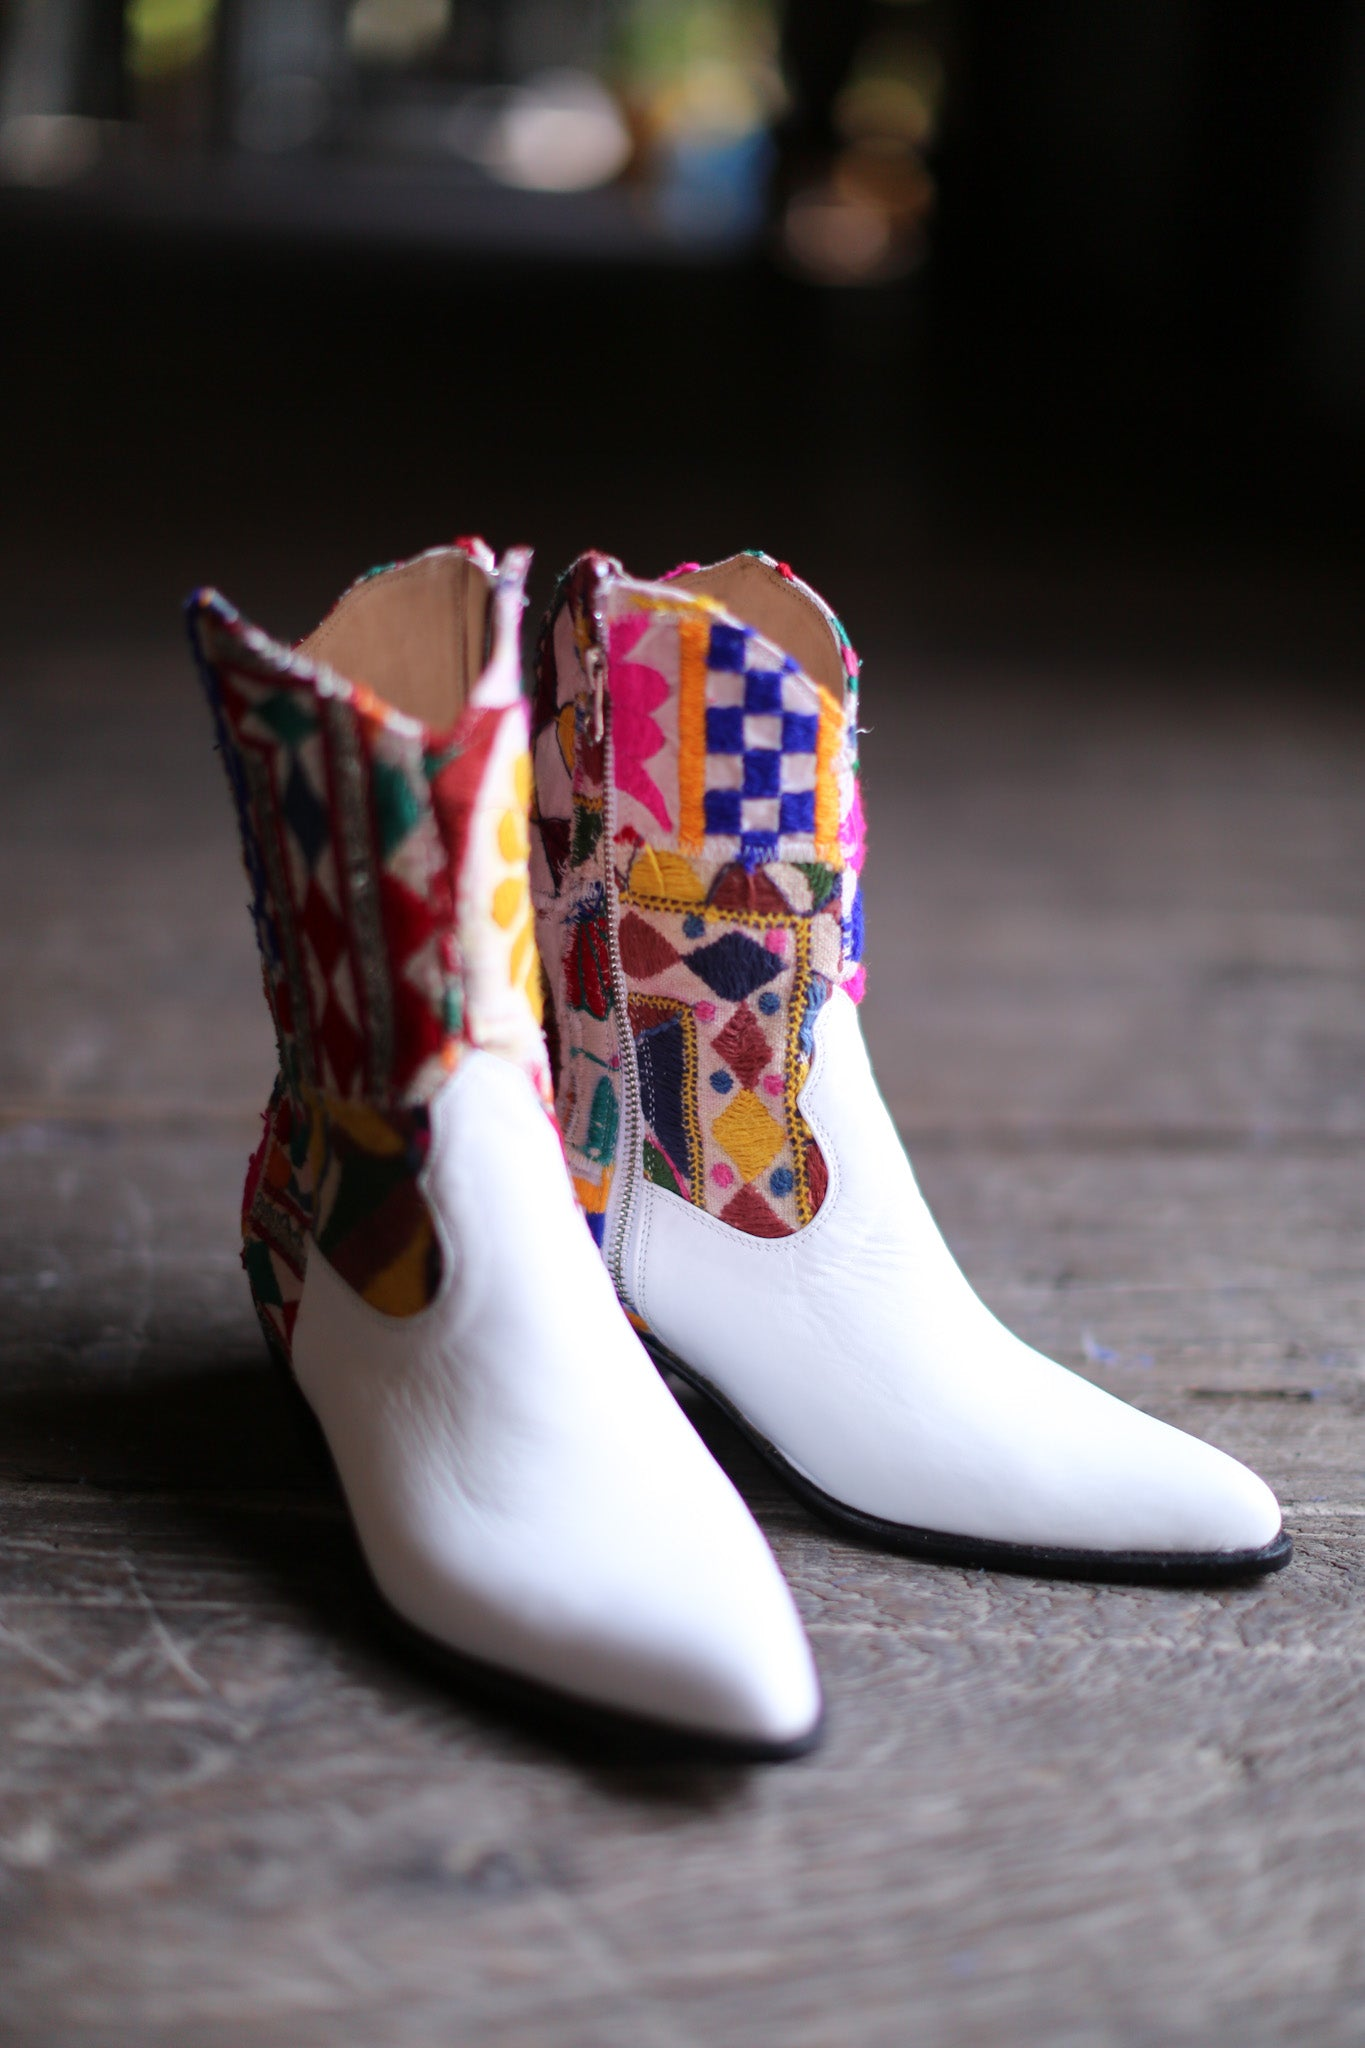 Bohemian Boho Chic Ankle Boots